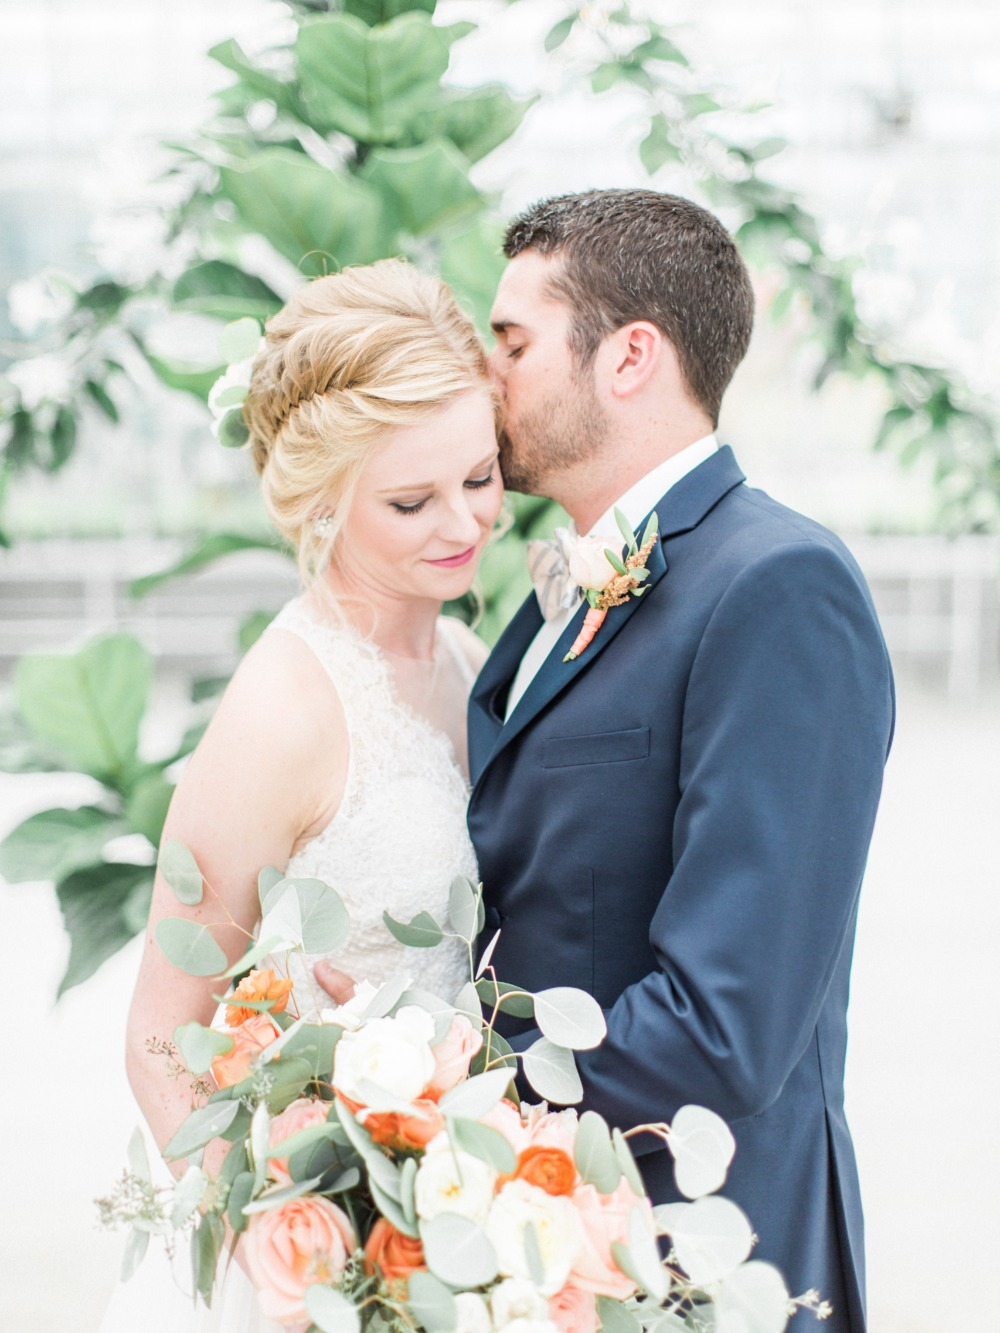 Stylish bride and groom look